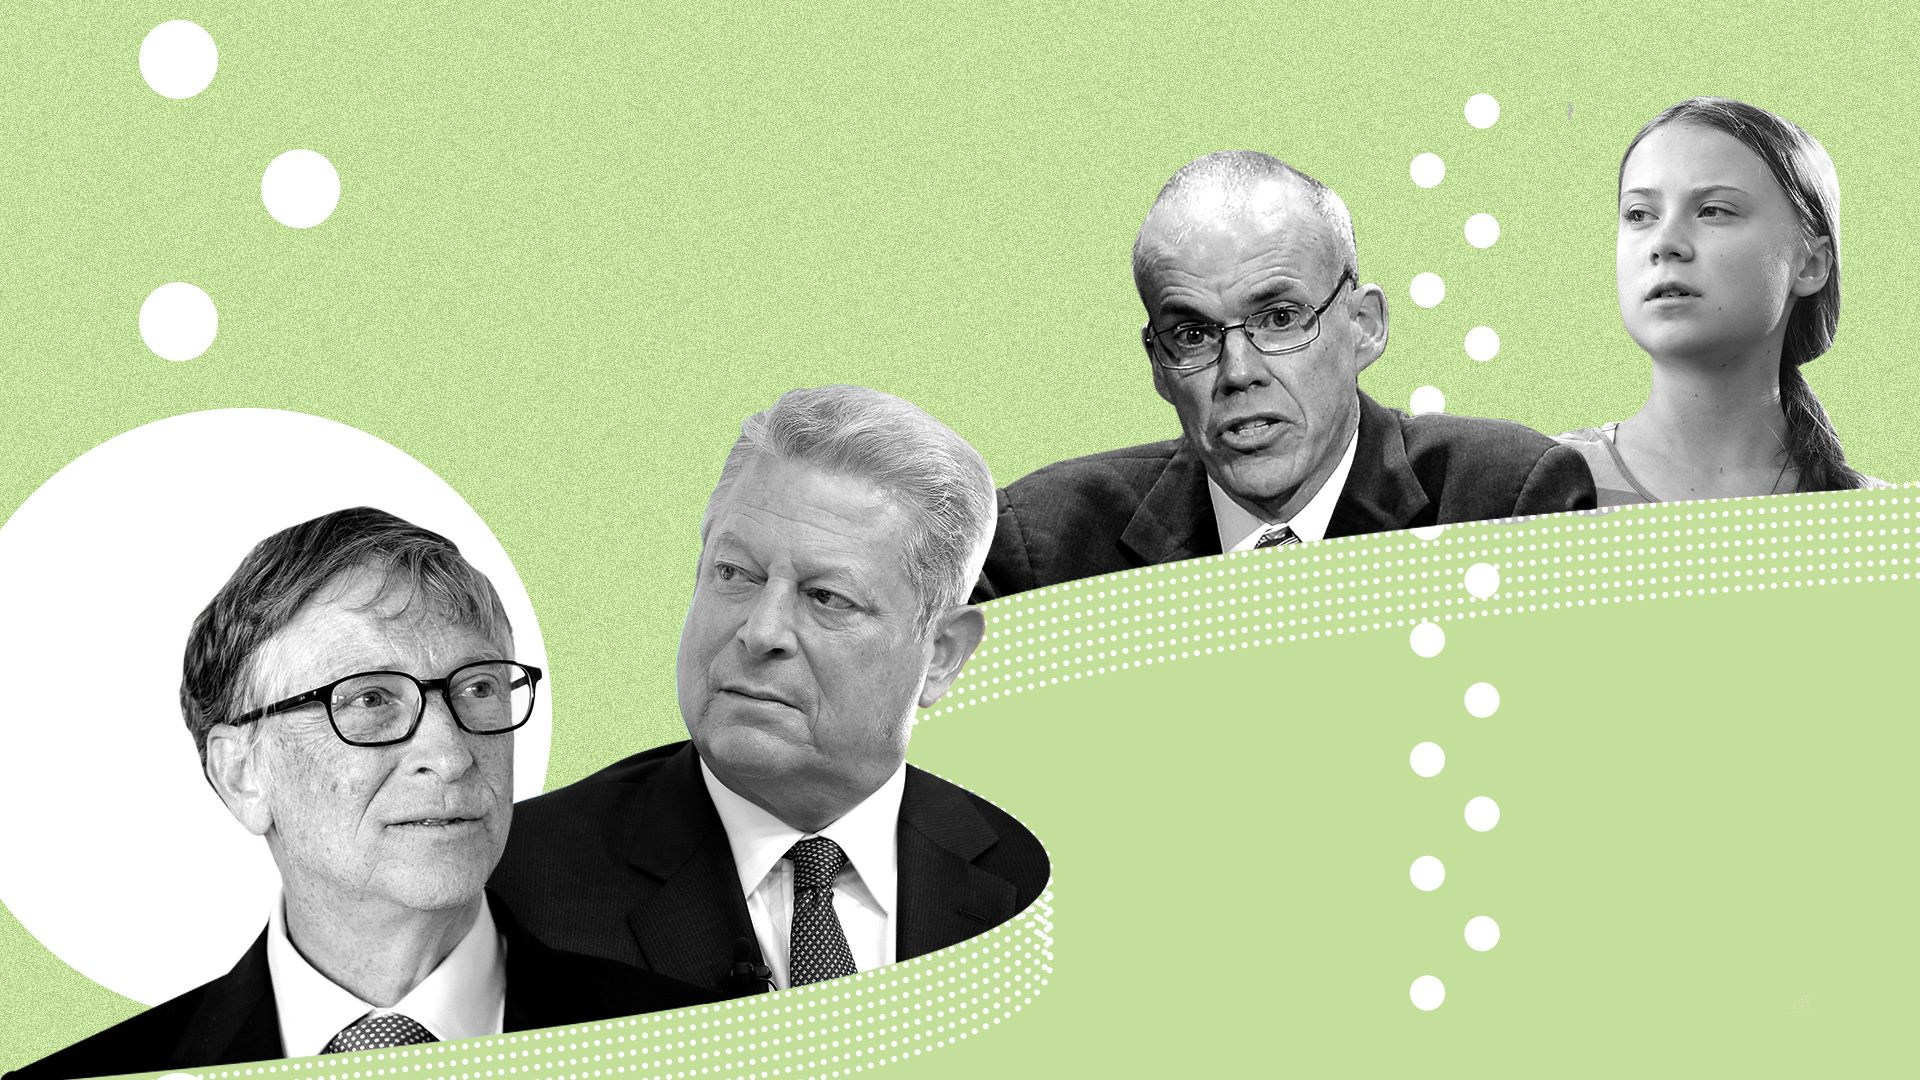 The carbon footprints of the rich and activist - Axios